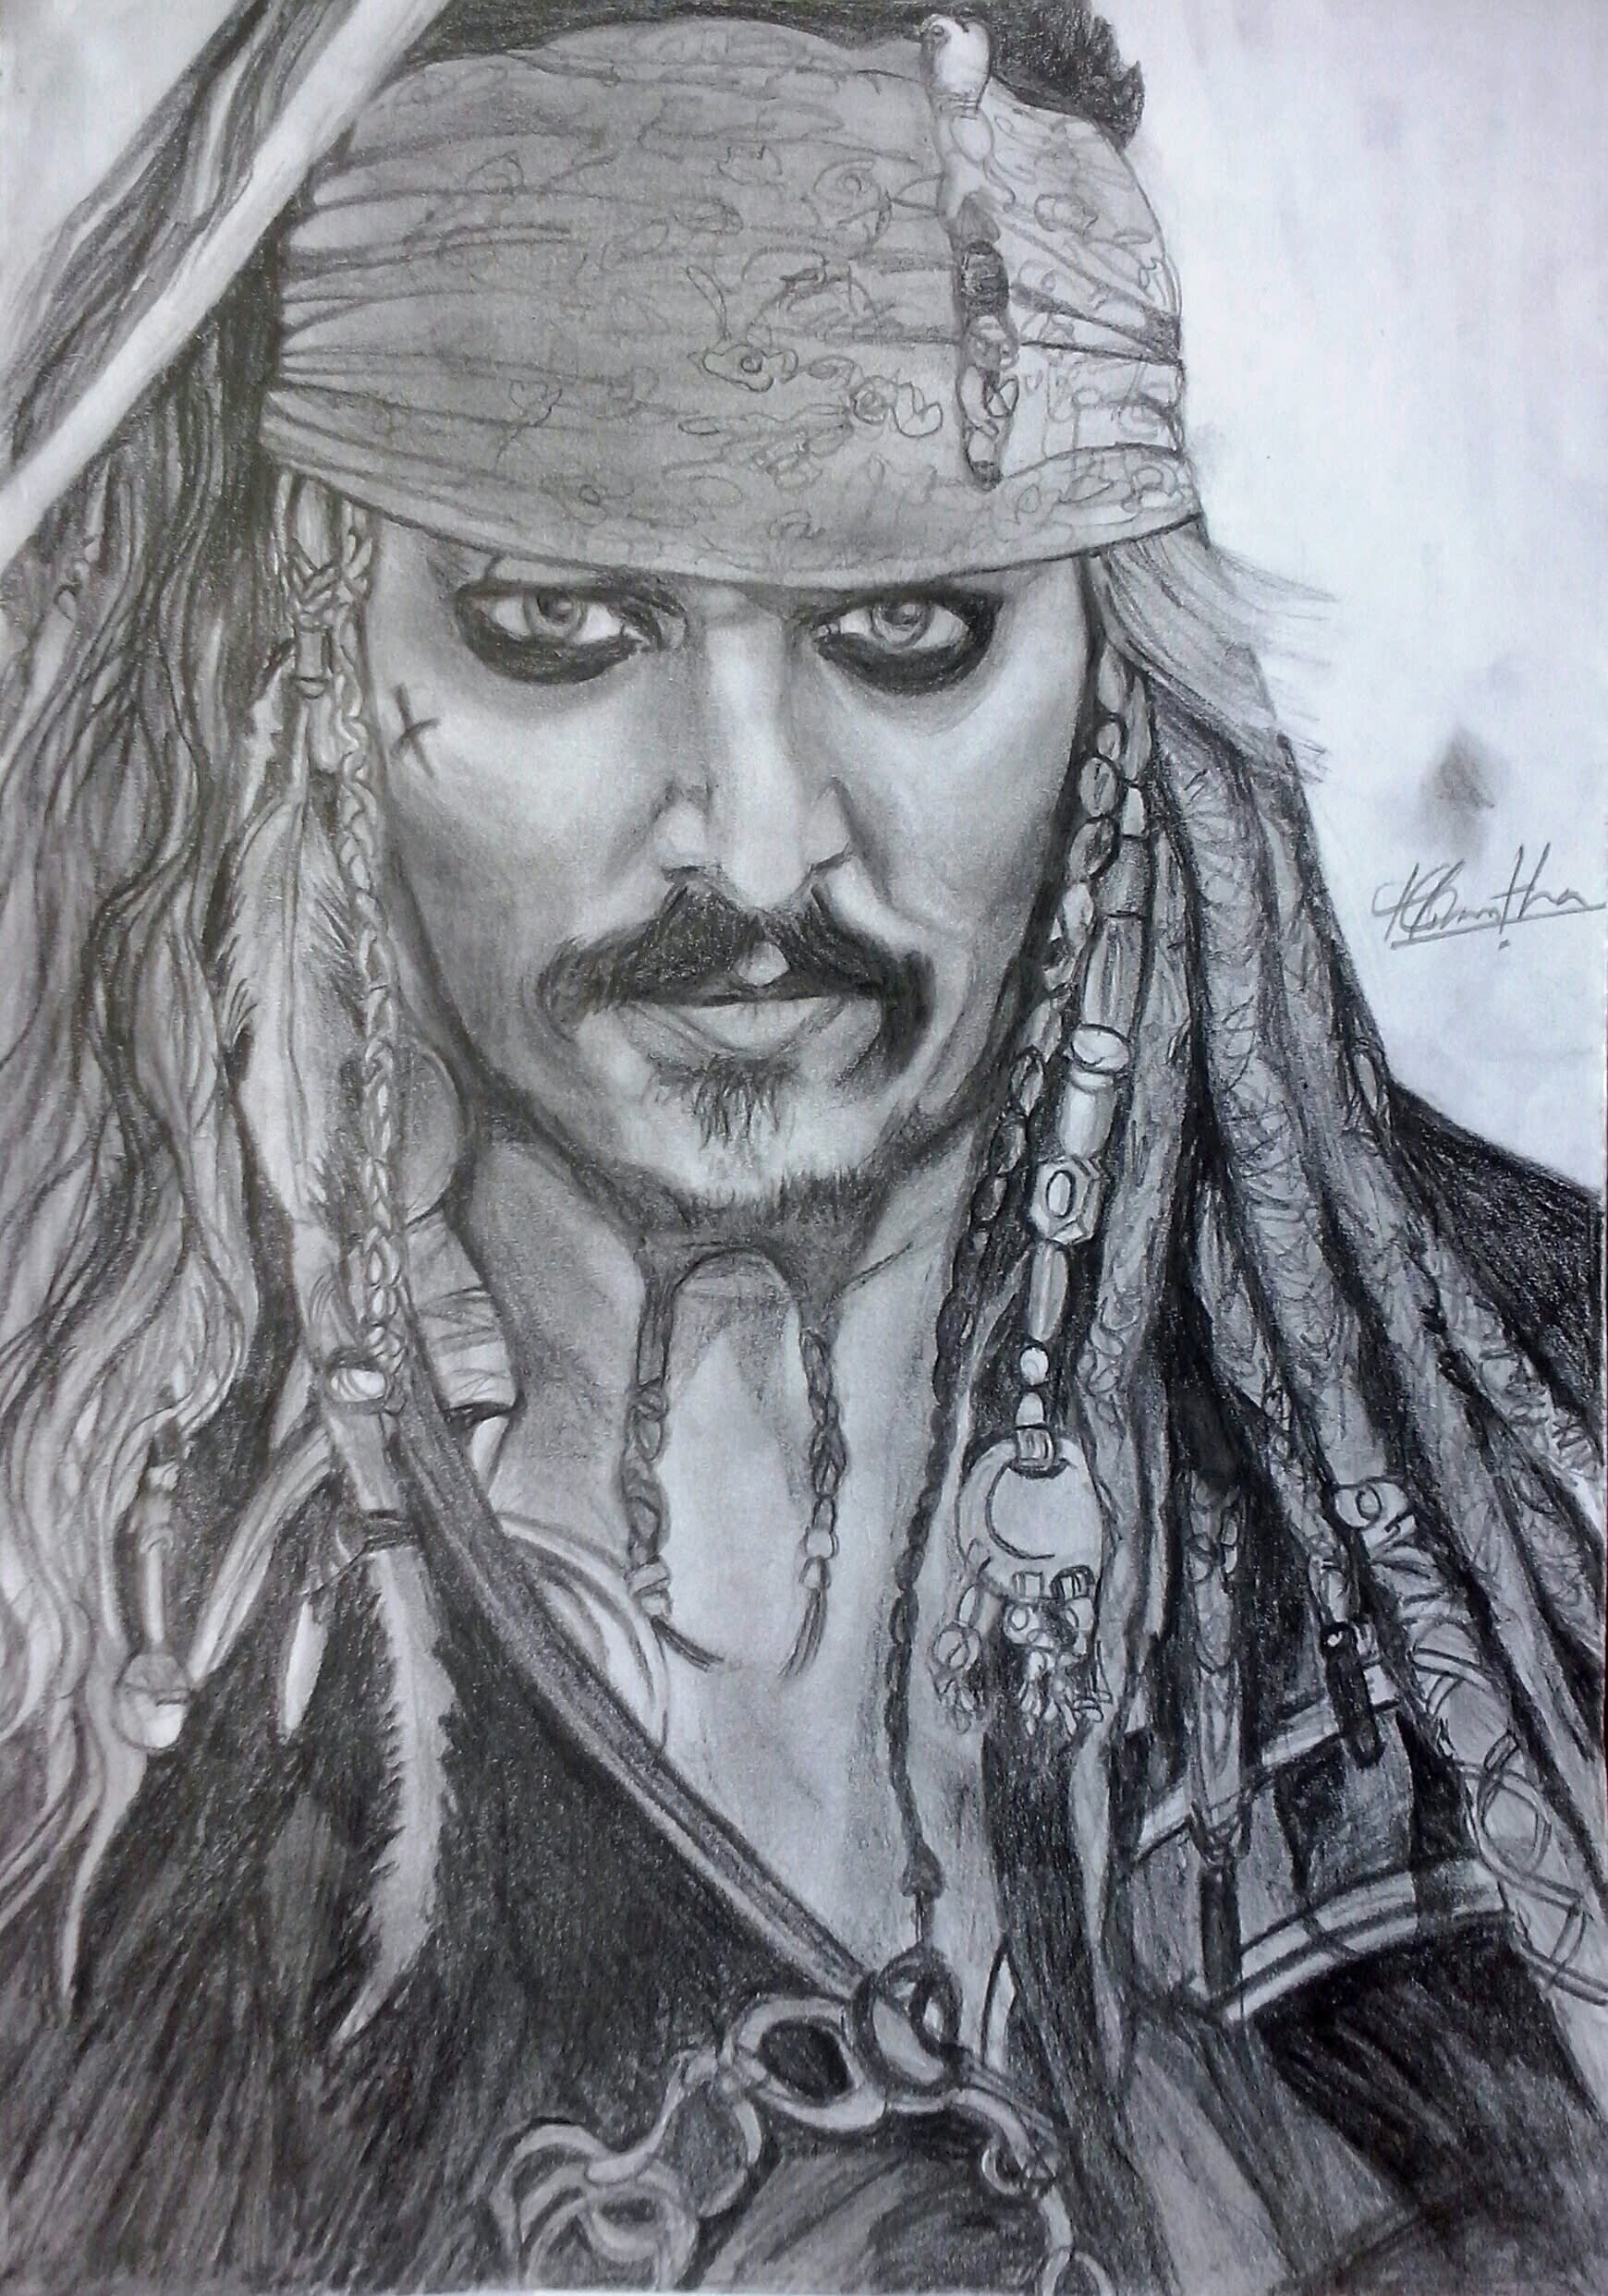 I will create a professional pencil drawing